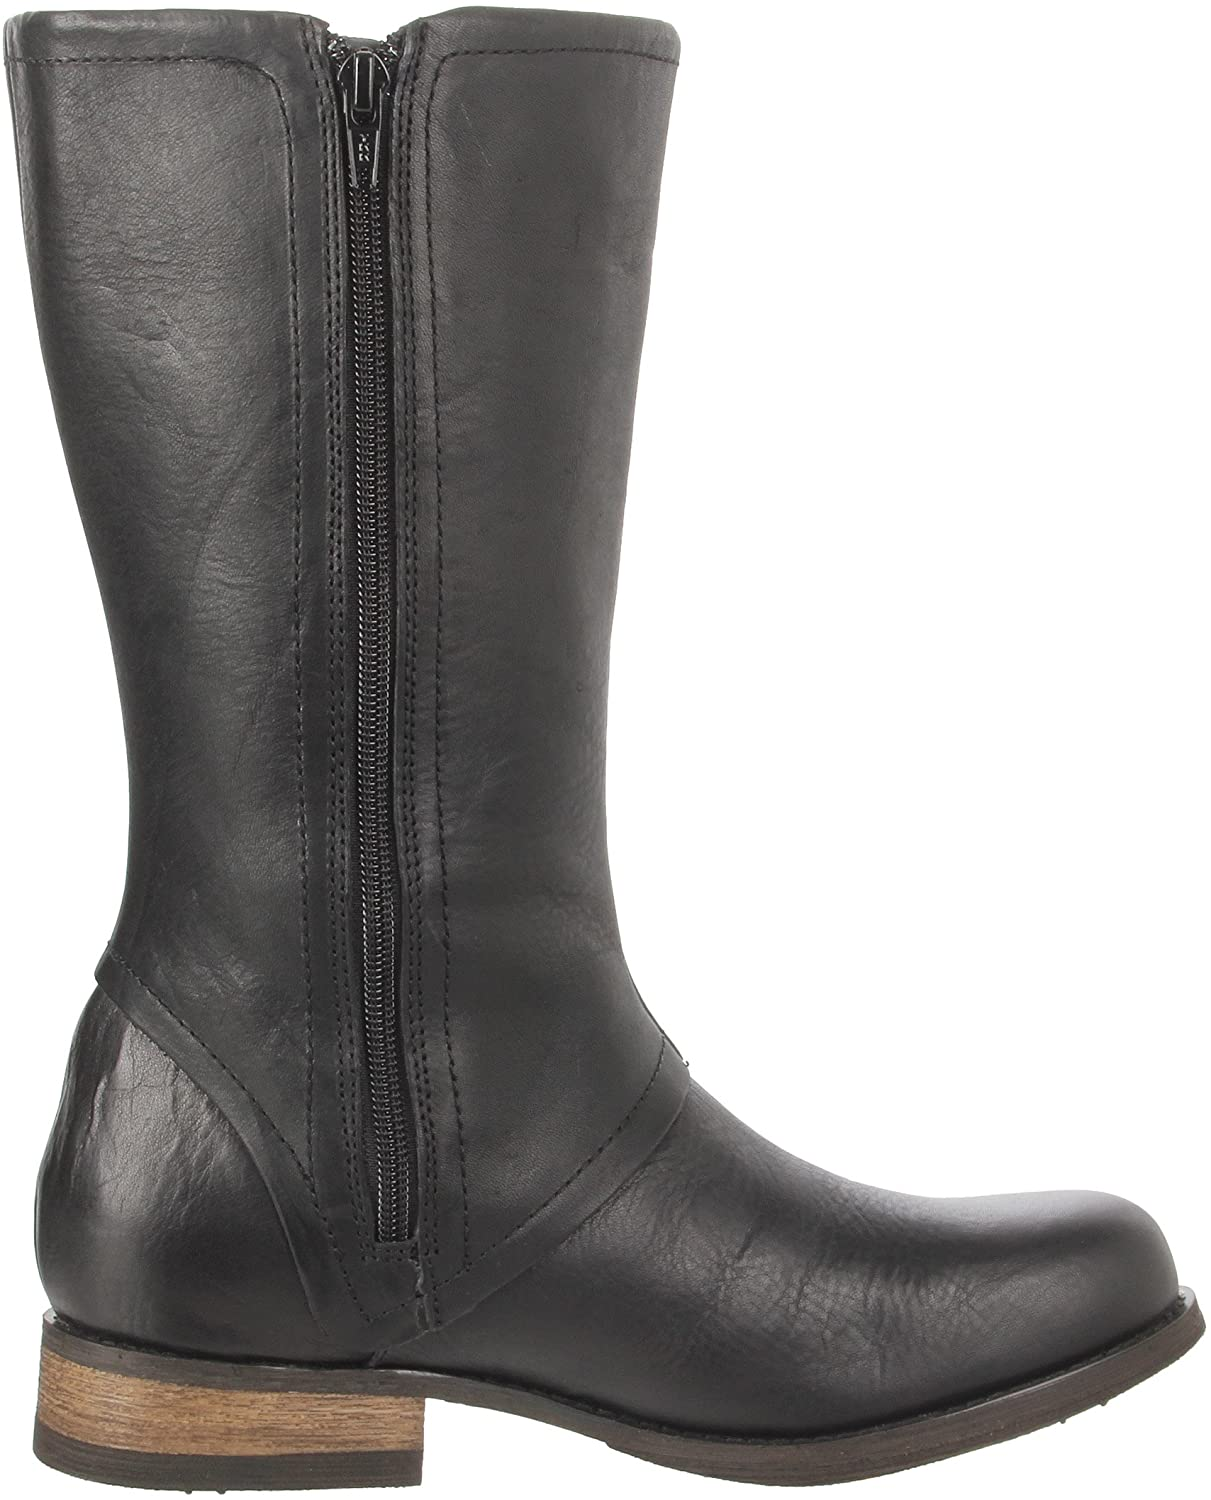 Caterpillar PAYTON  Mid Calf  Womens Work Casual Black Leather Boots